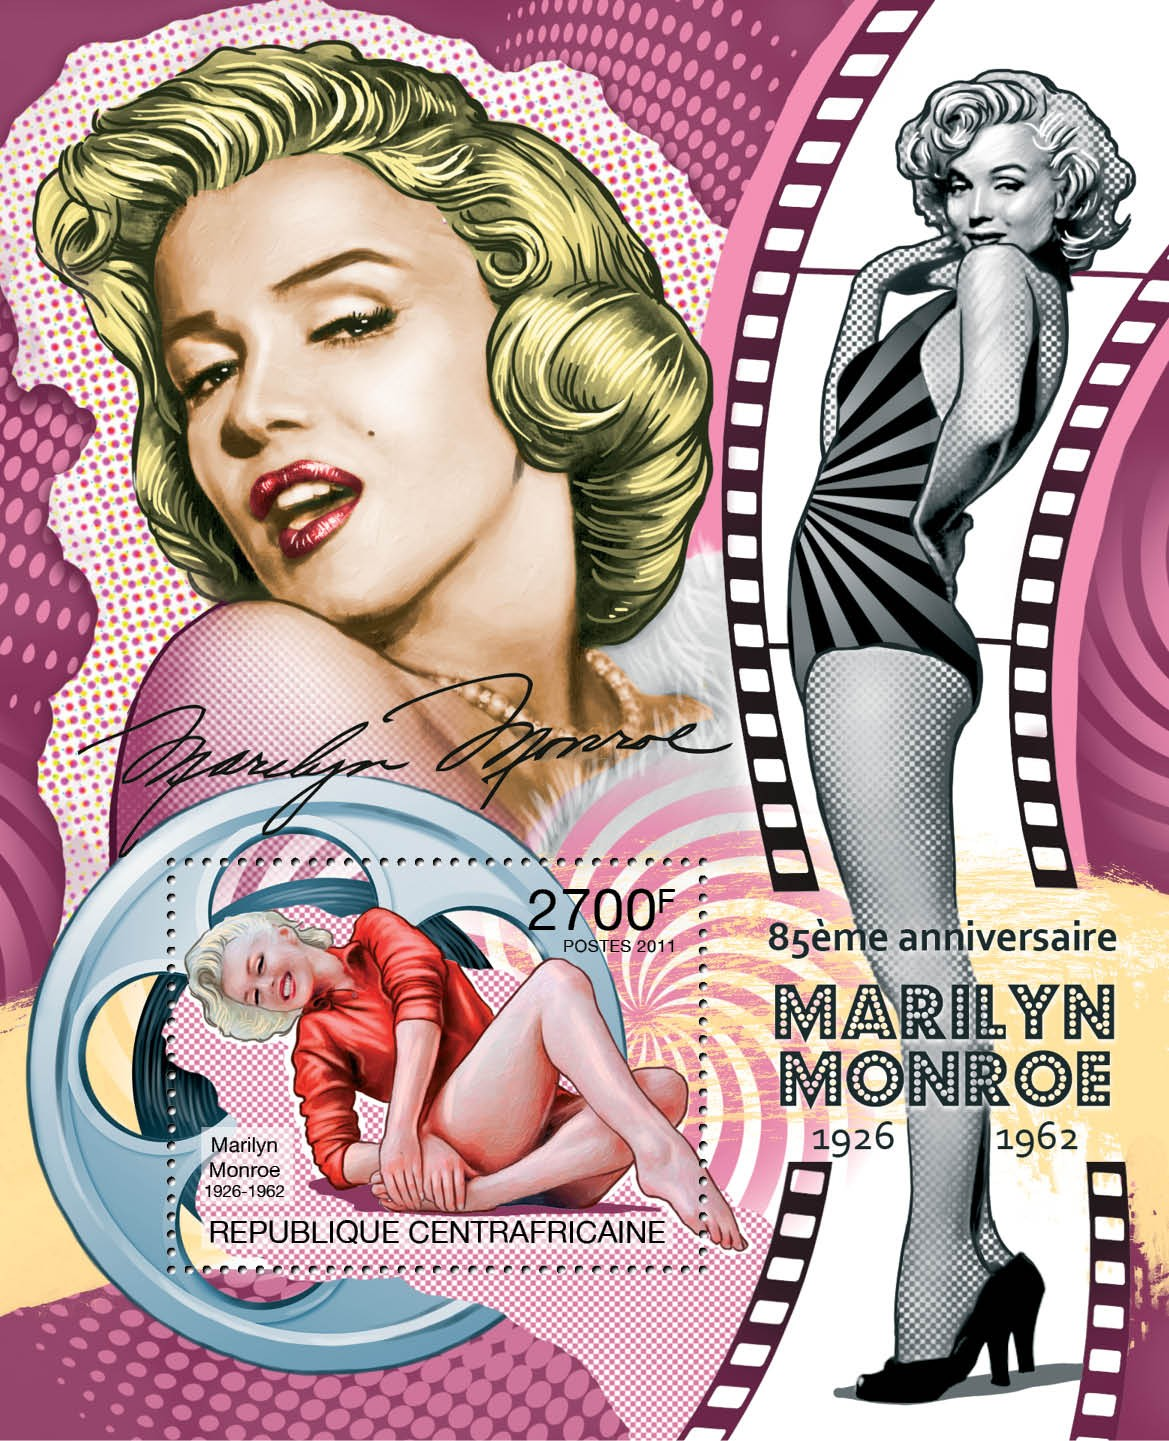 85th Anniversary of Marilyn Monroe. (1926-1962). - Issue of Central African republic postage stamps